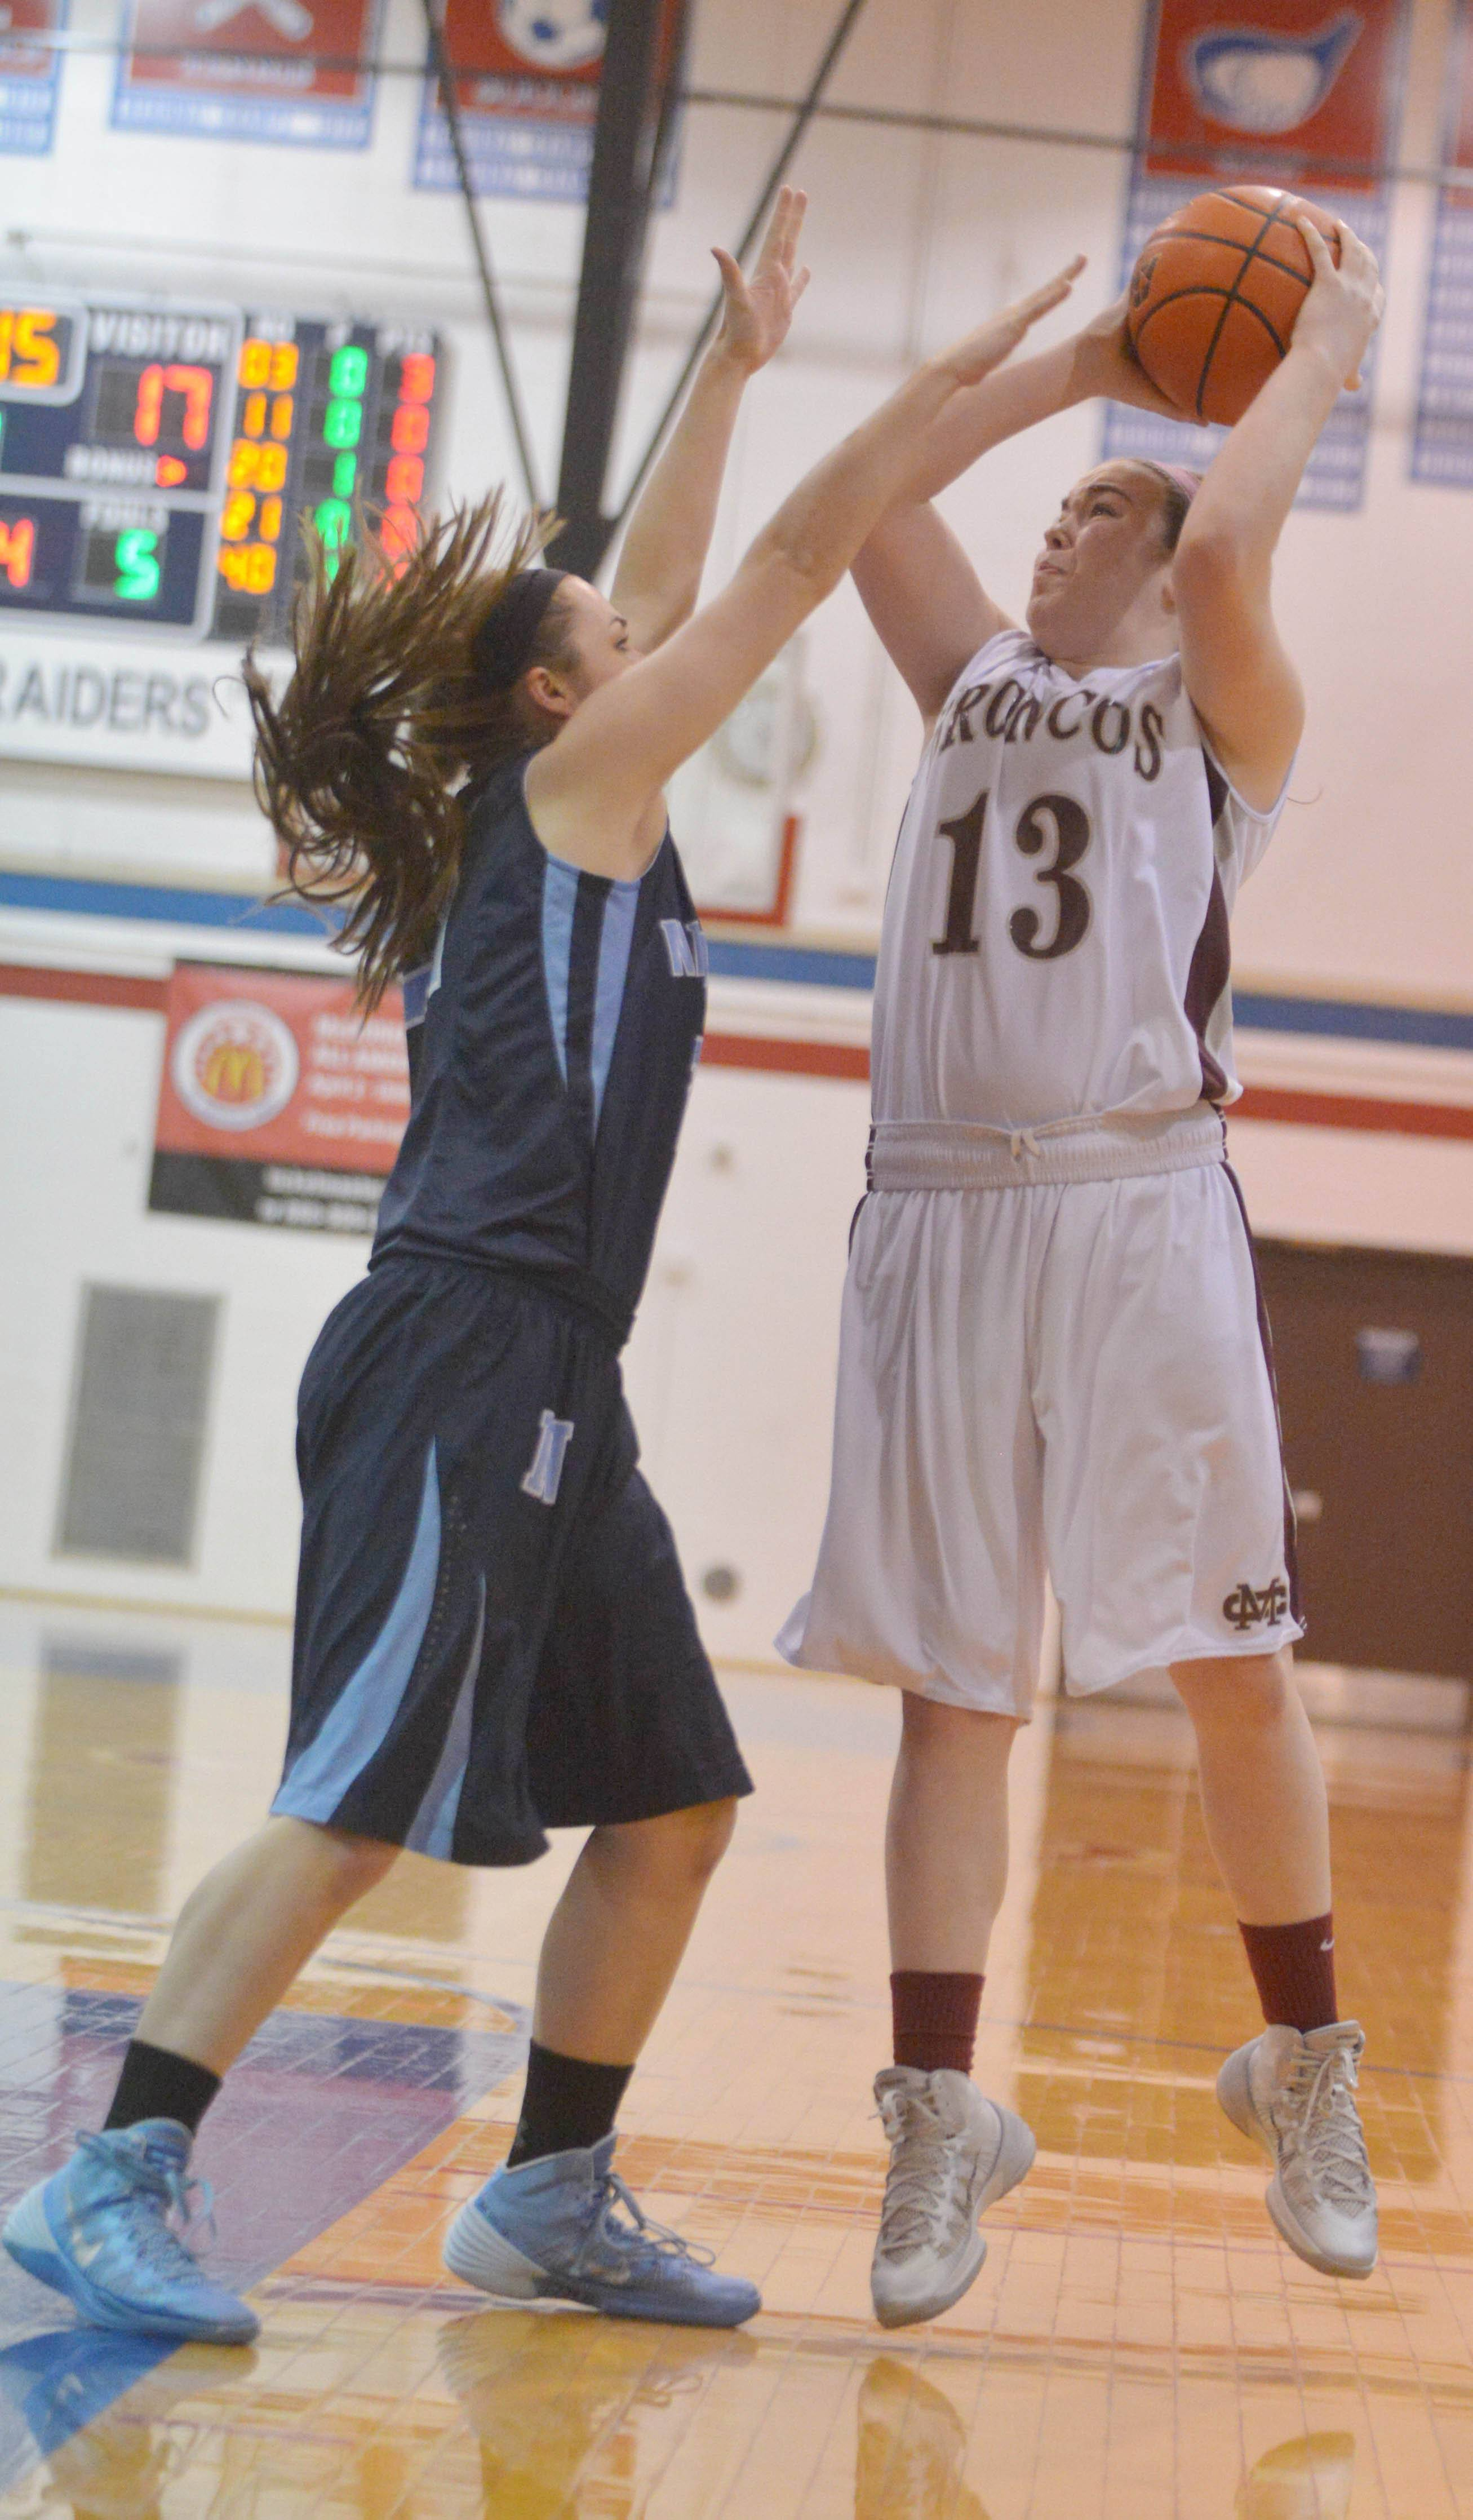 Kaylee Bambule of Montini lines up a shot.